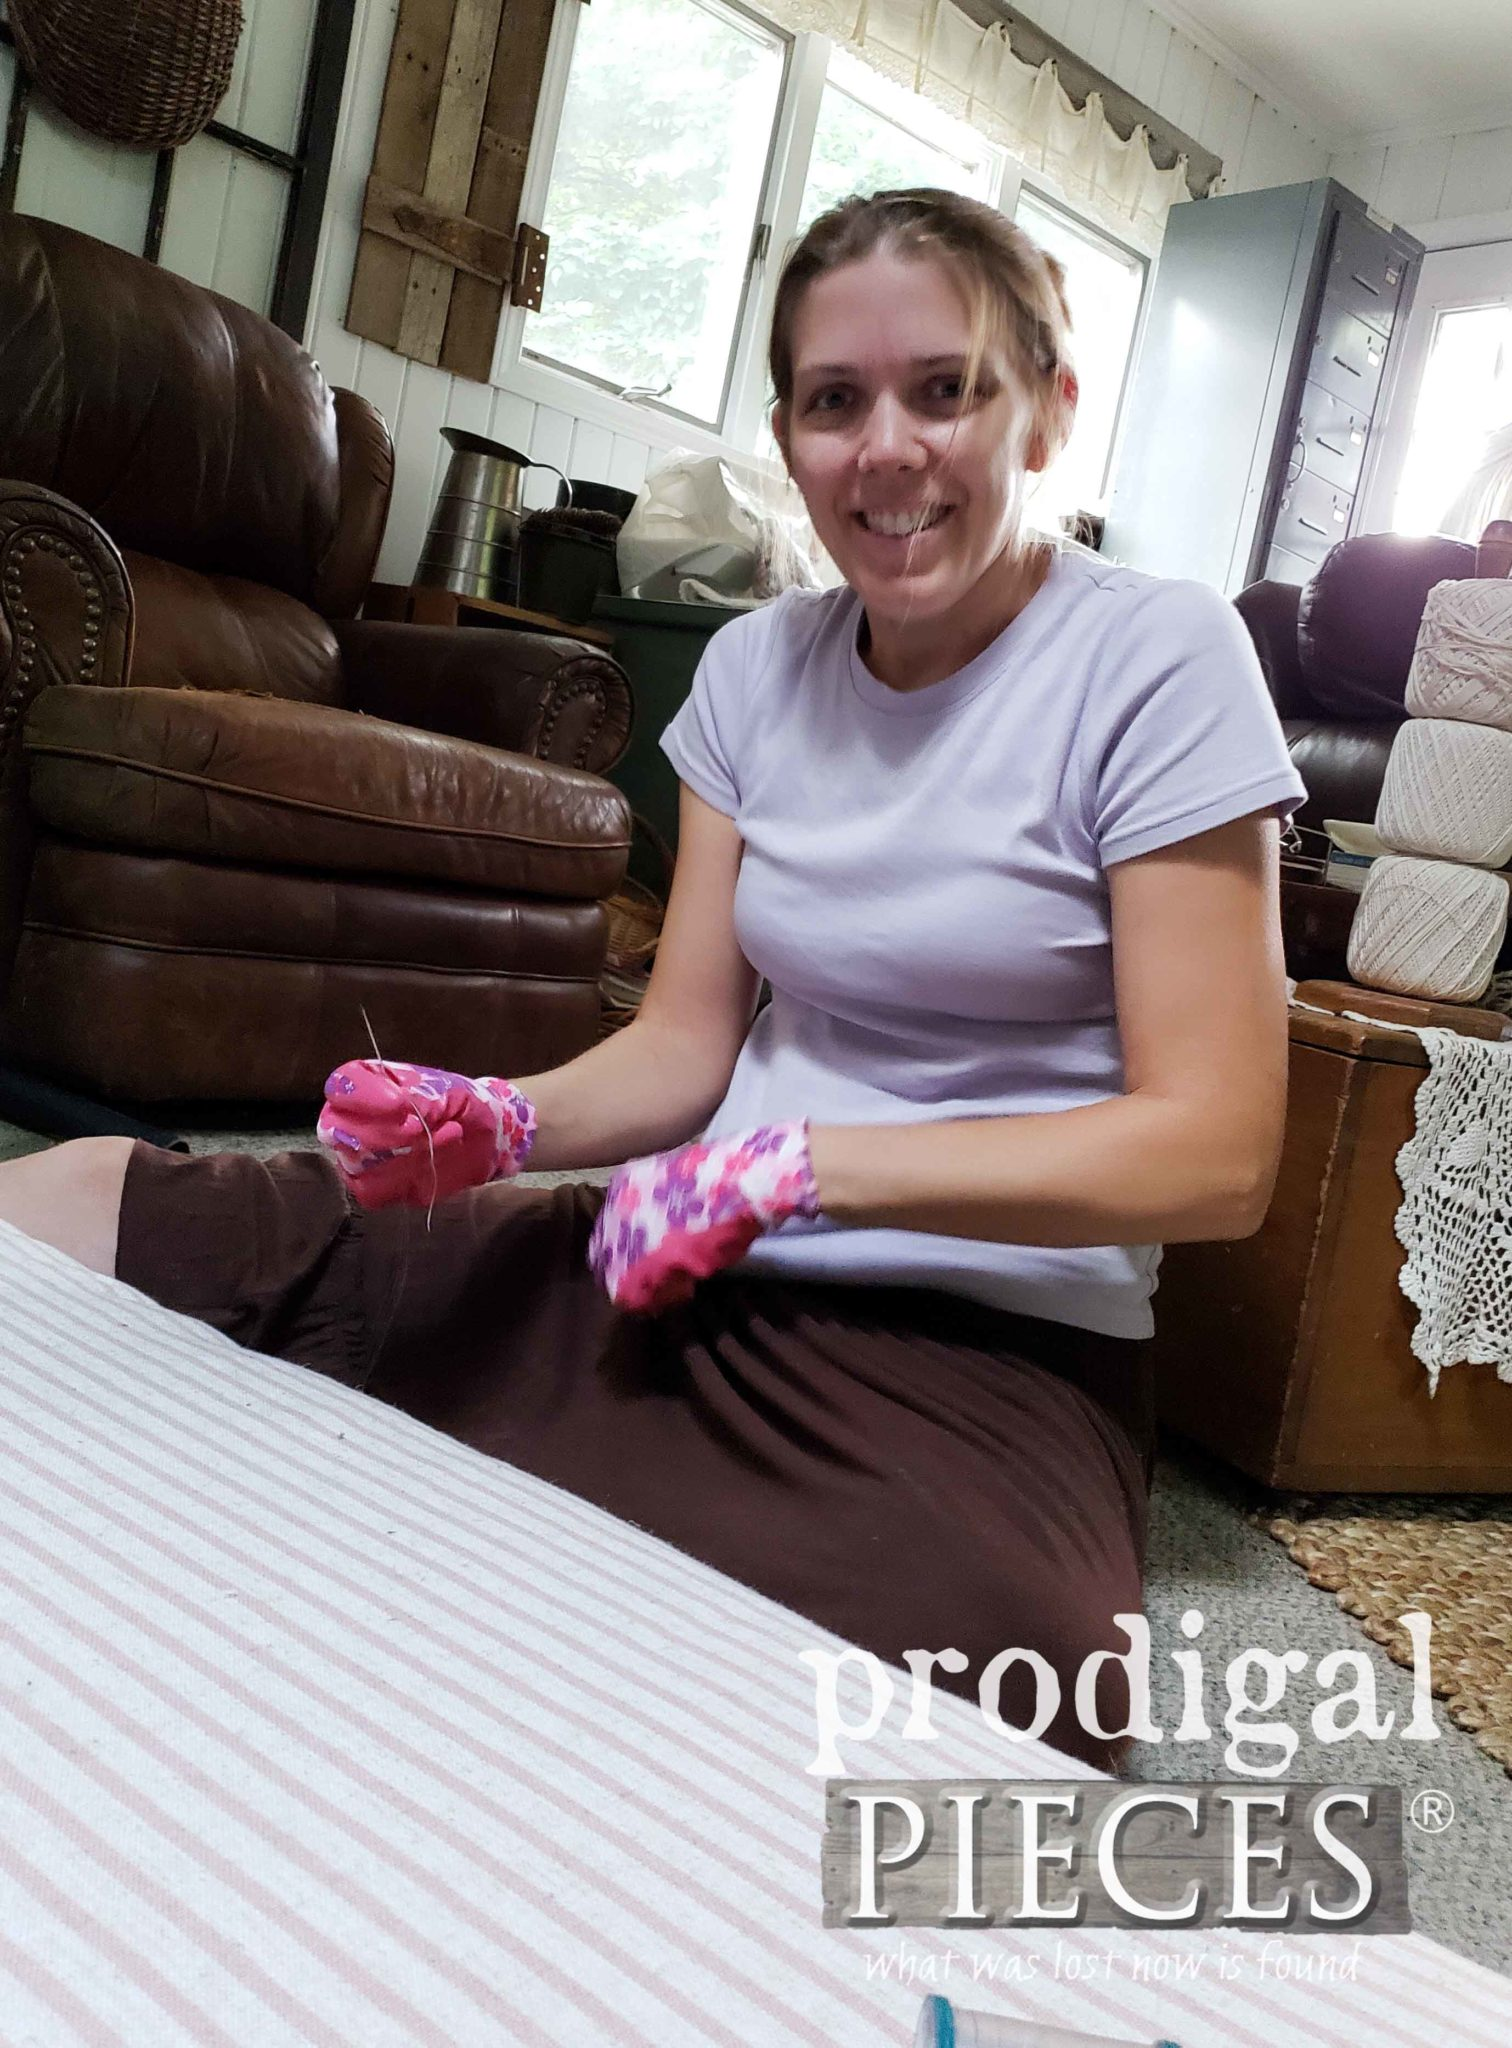 Larissa Haynes of Prodigal Pieces Sewing a French Mattress for her French Provincial Headboard Bench | prodigalpieces.com